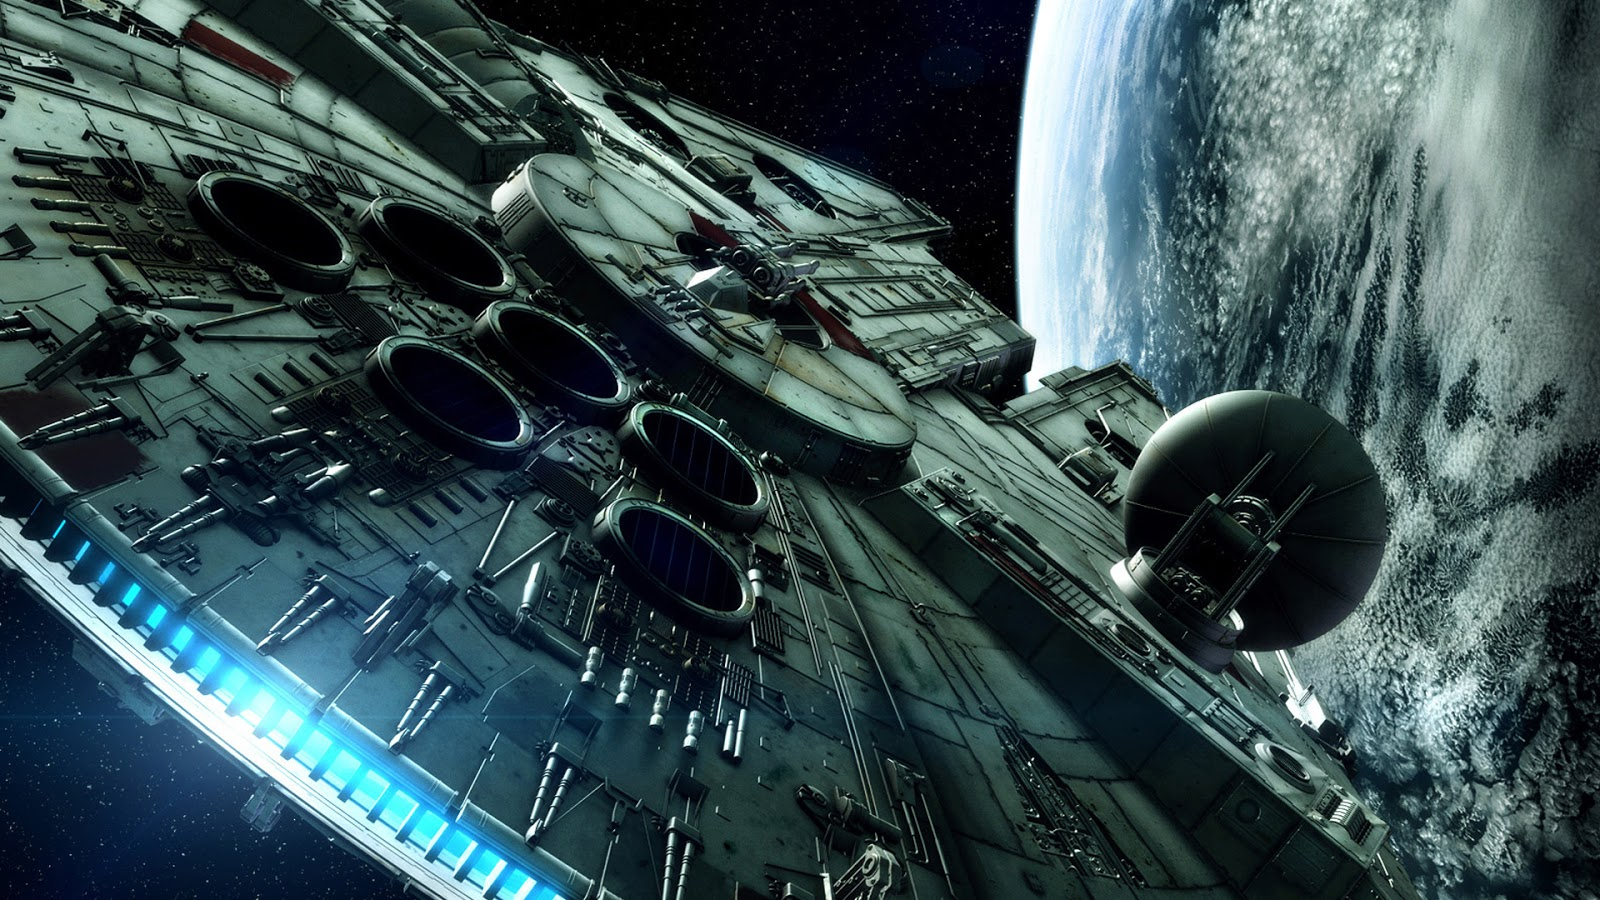 Star wars Images HD 1080p Widescreen